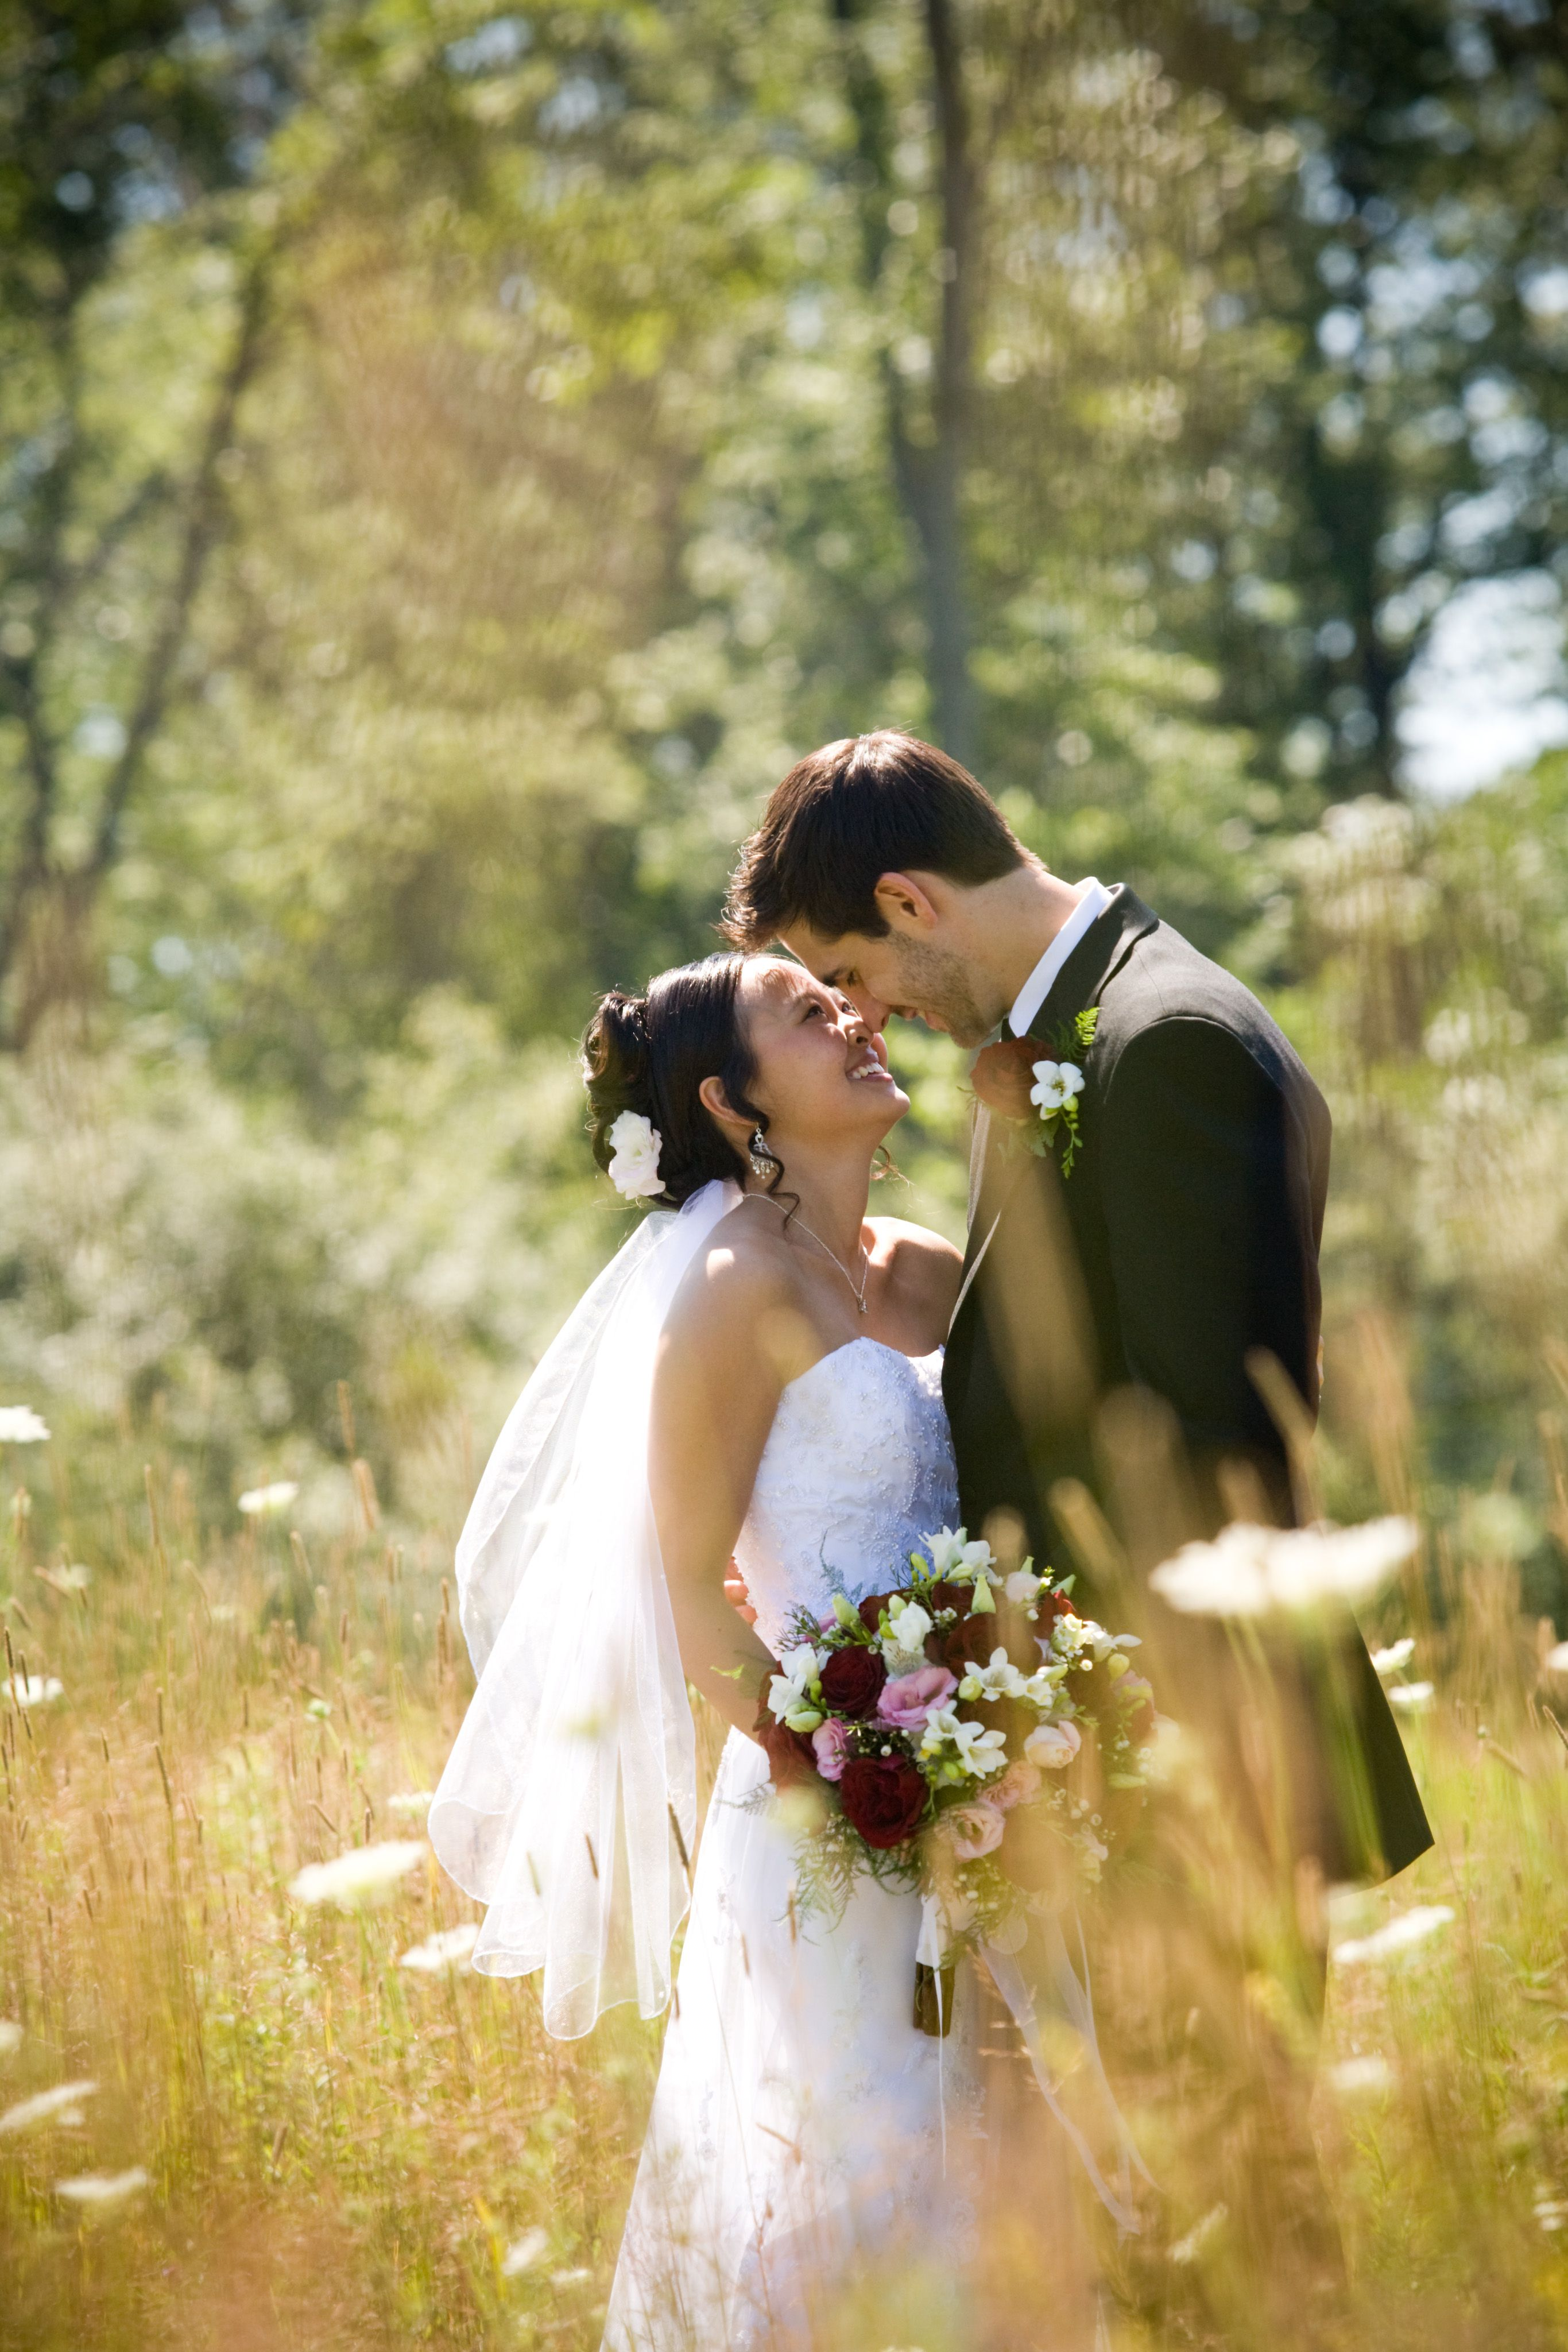 Outdoor wedding couple pose maternity posing pinterest for Outdoor wedding photography poses